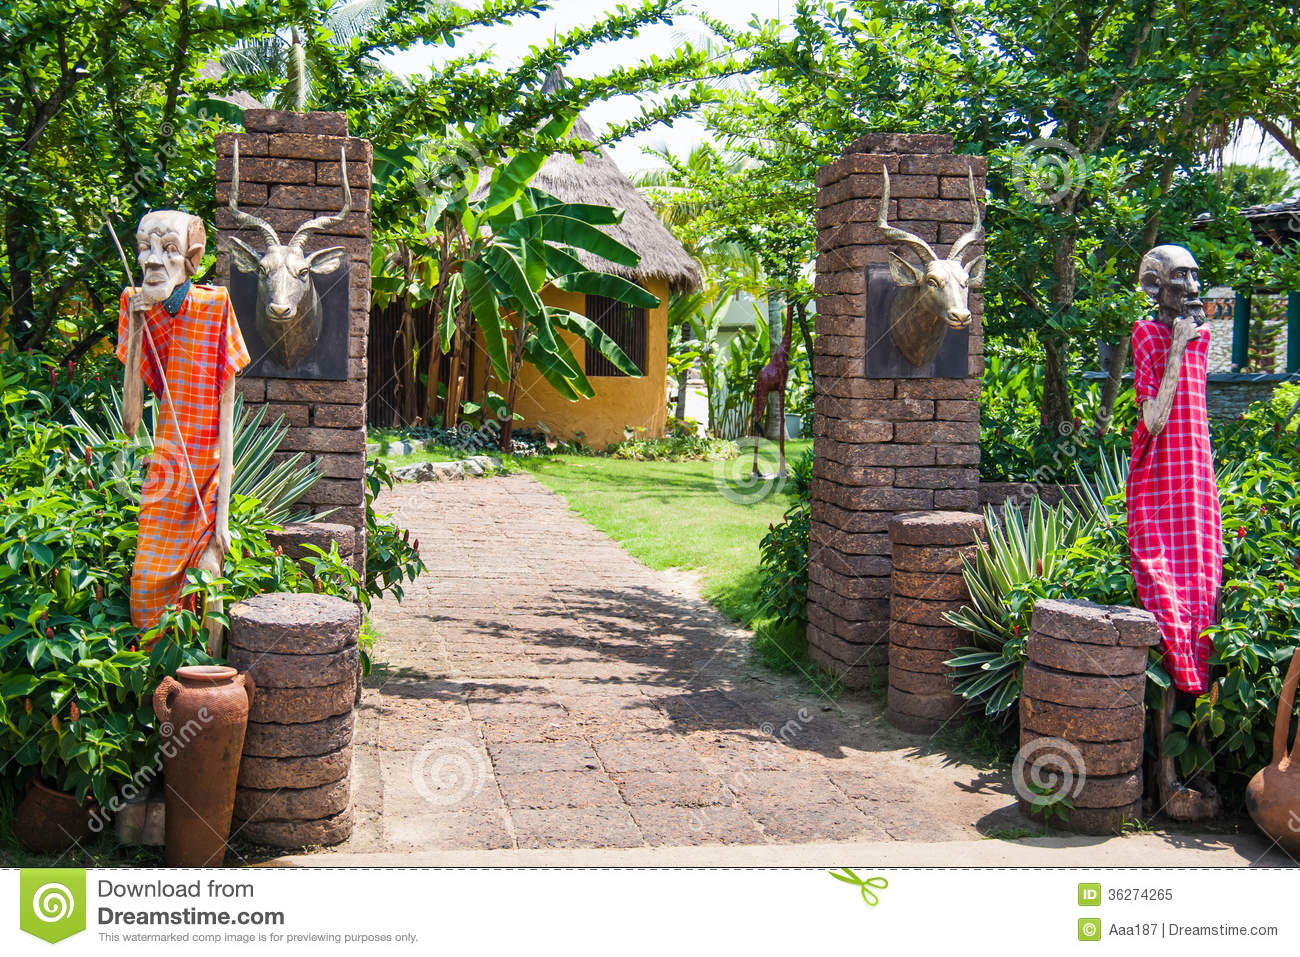 South african garden design stock image image 36274265 for Garden designs in south africa